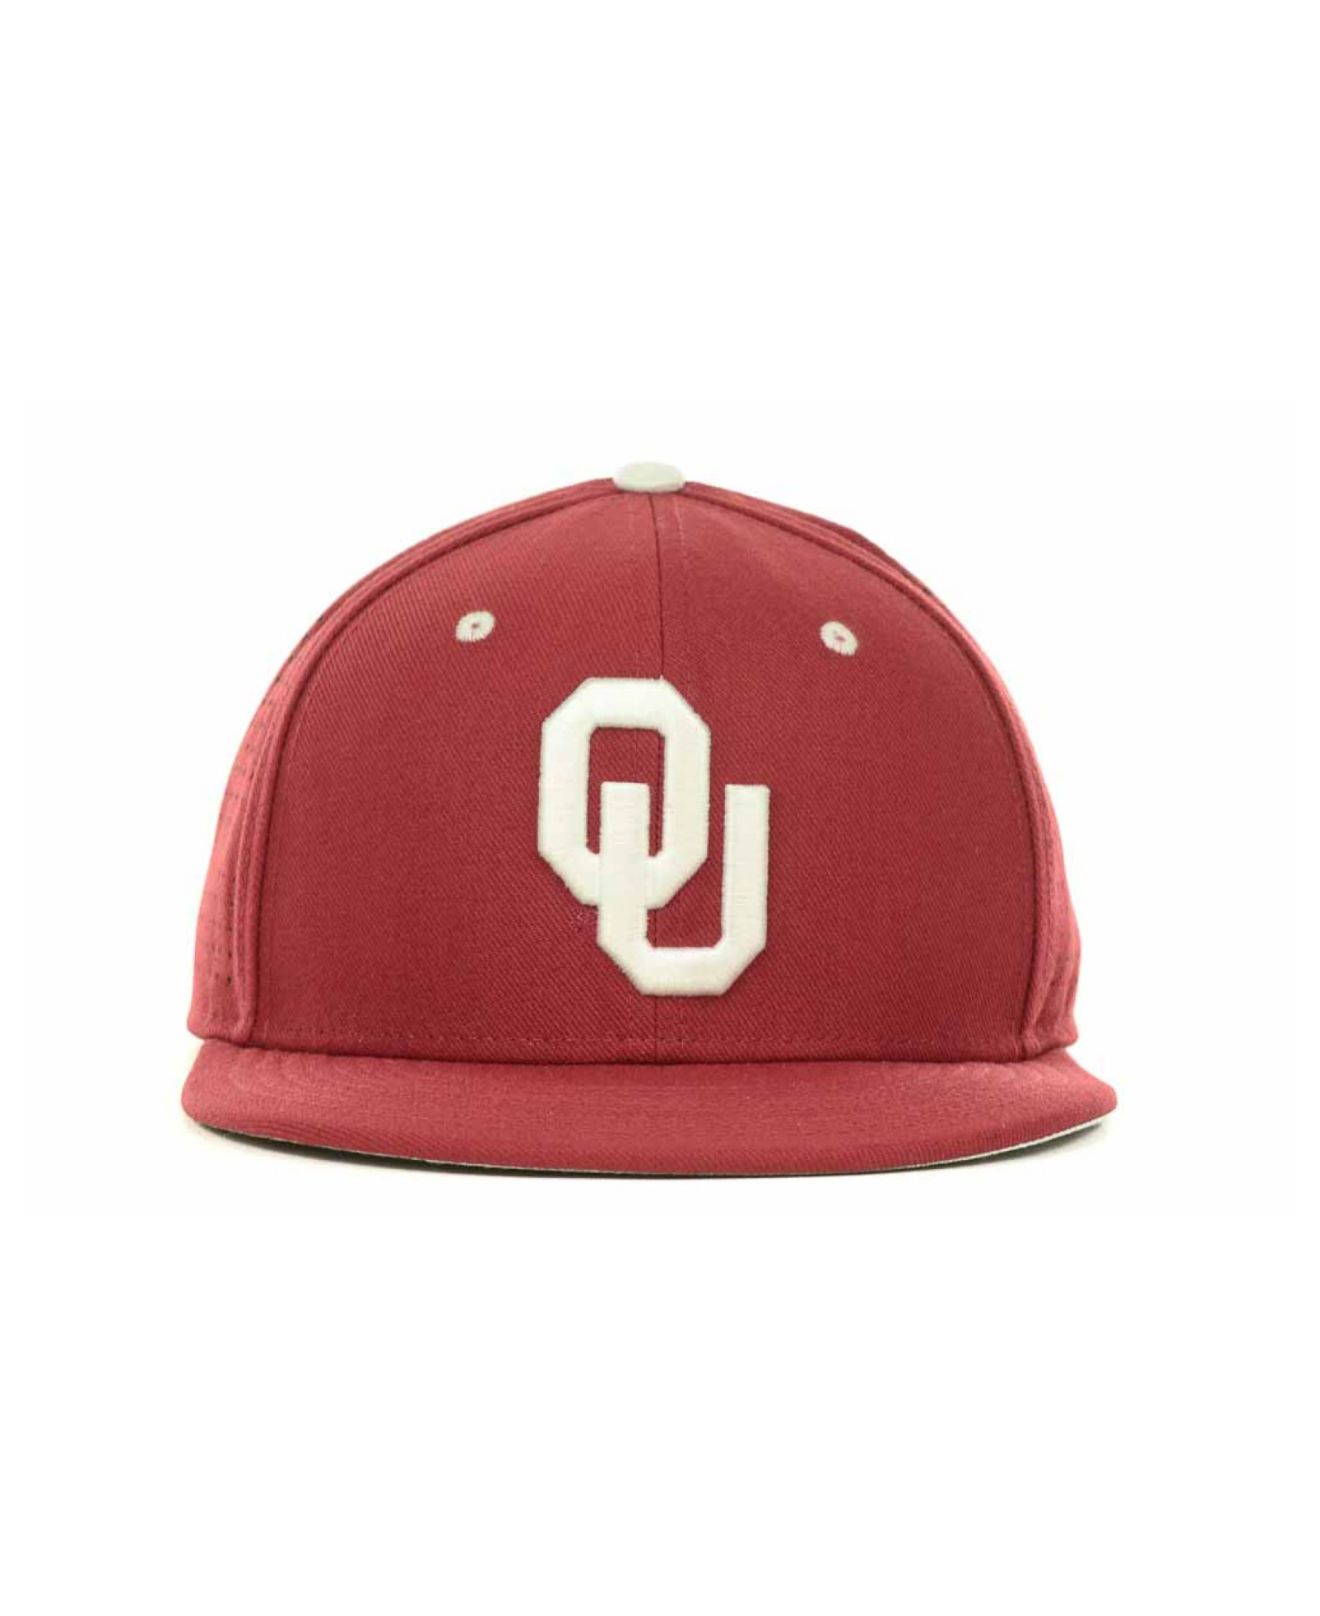 huge selection of 217f2 625c3 Nike Oklahoma Sooners Ncaa Authentic Vapor Fitted Cap in Red for Men ...